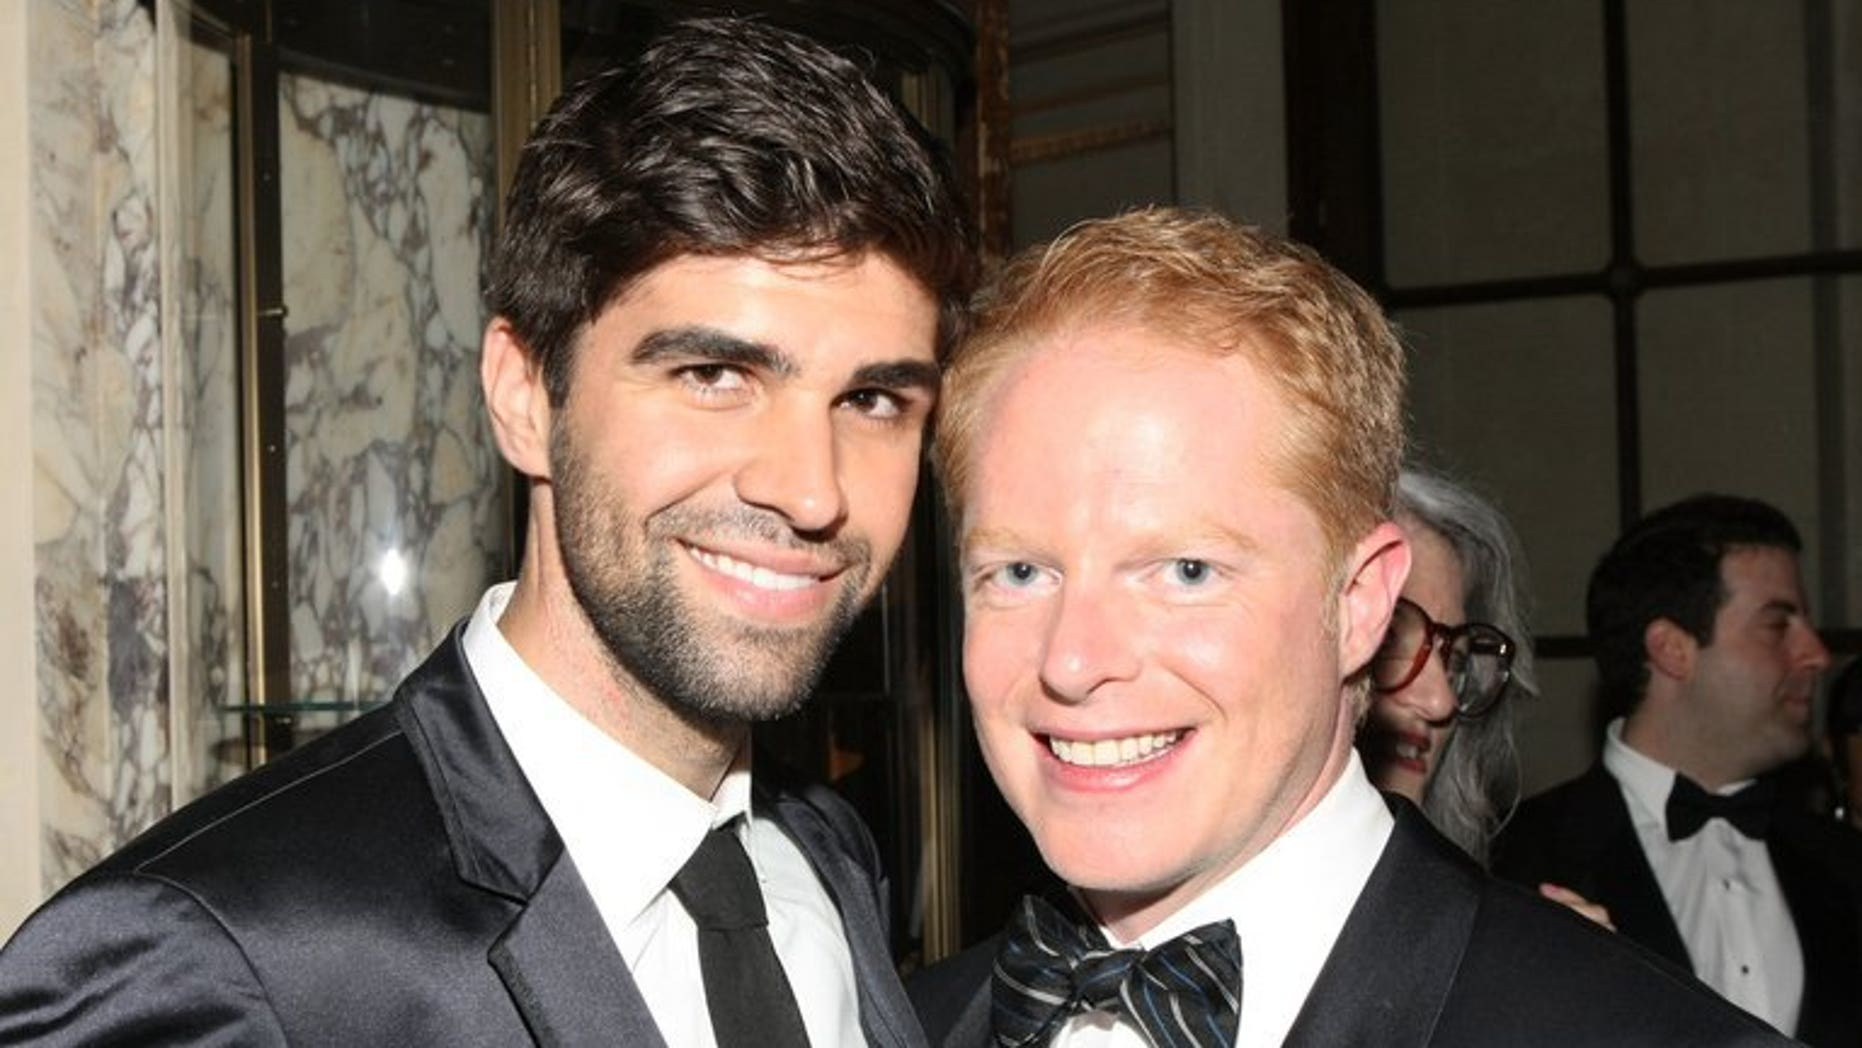 Actor Jesse Tyler Ferguson (R) and his partner Justin Mikita attend the Tony Awards on June 9, 2013 in New York. The pair will attend New Zealand's first same-sex marriage, set to take place on a plane at 30,000 feet (9,150 metres).